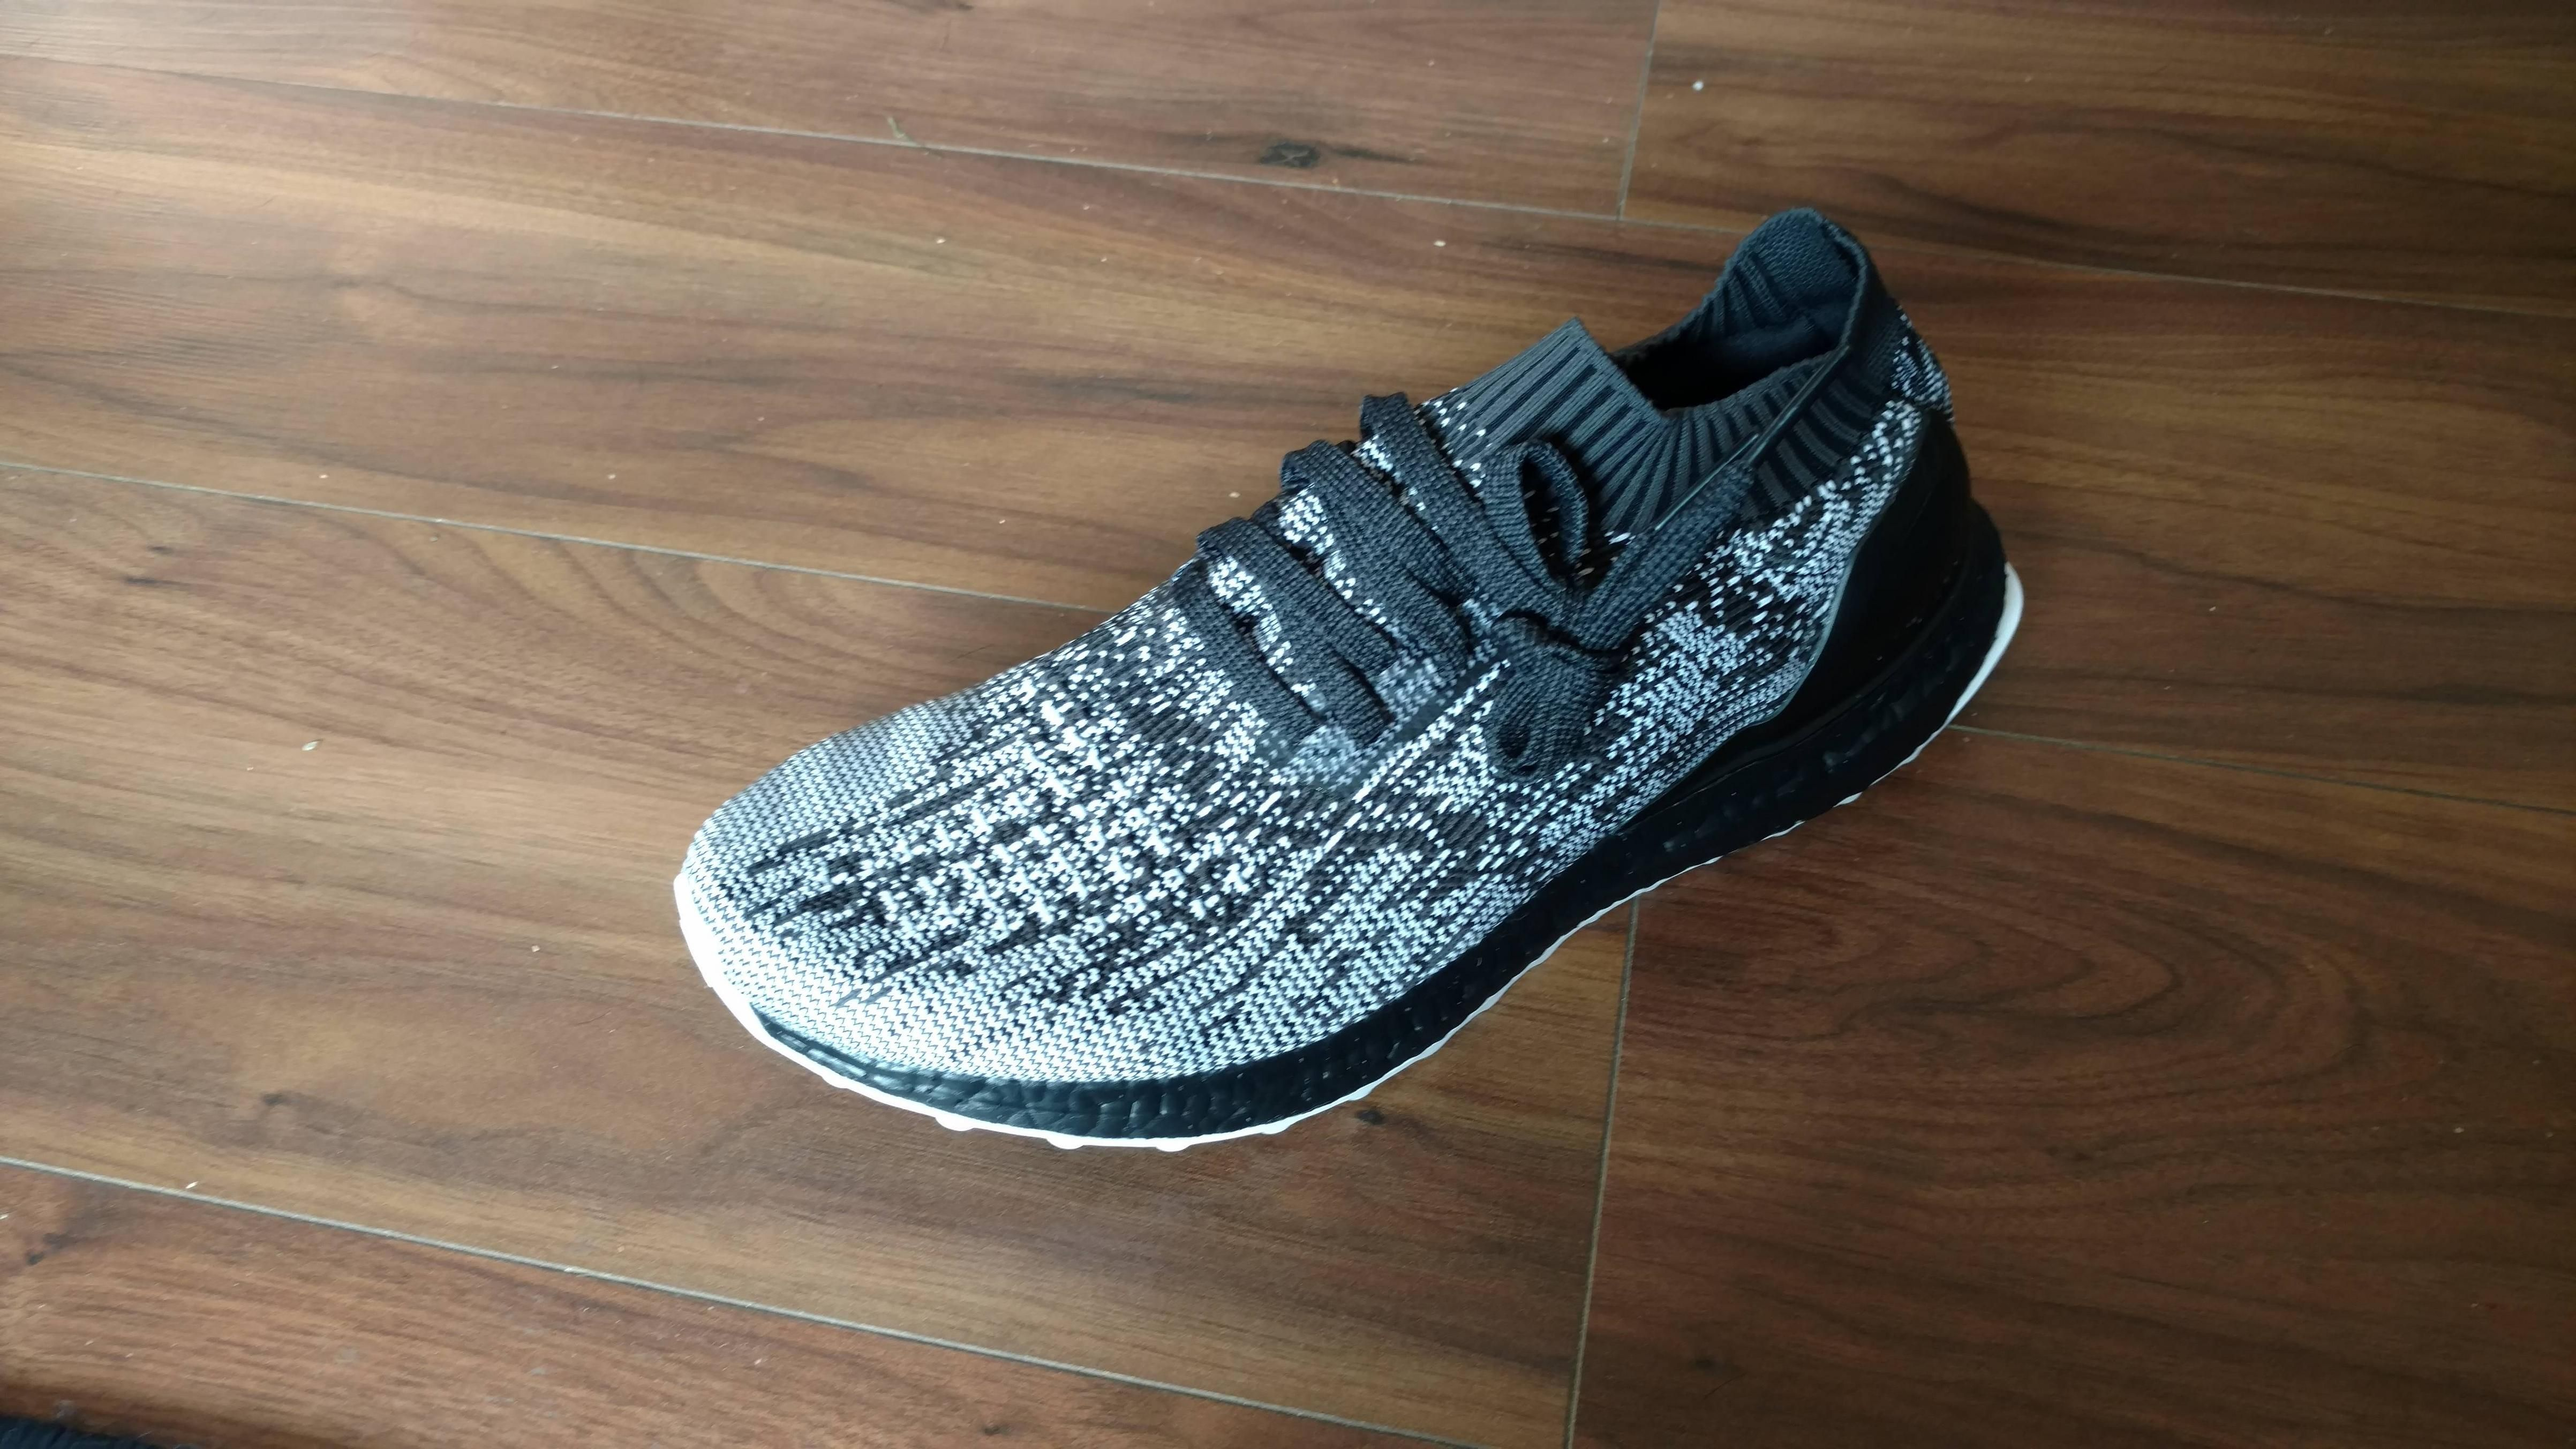 Requested guide to my Ultra Boost Uncaged alternative lacing.